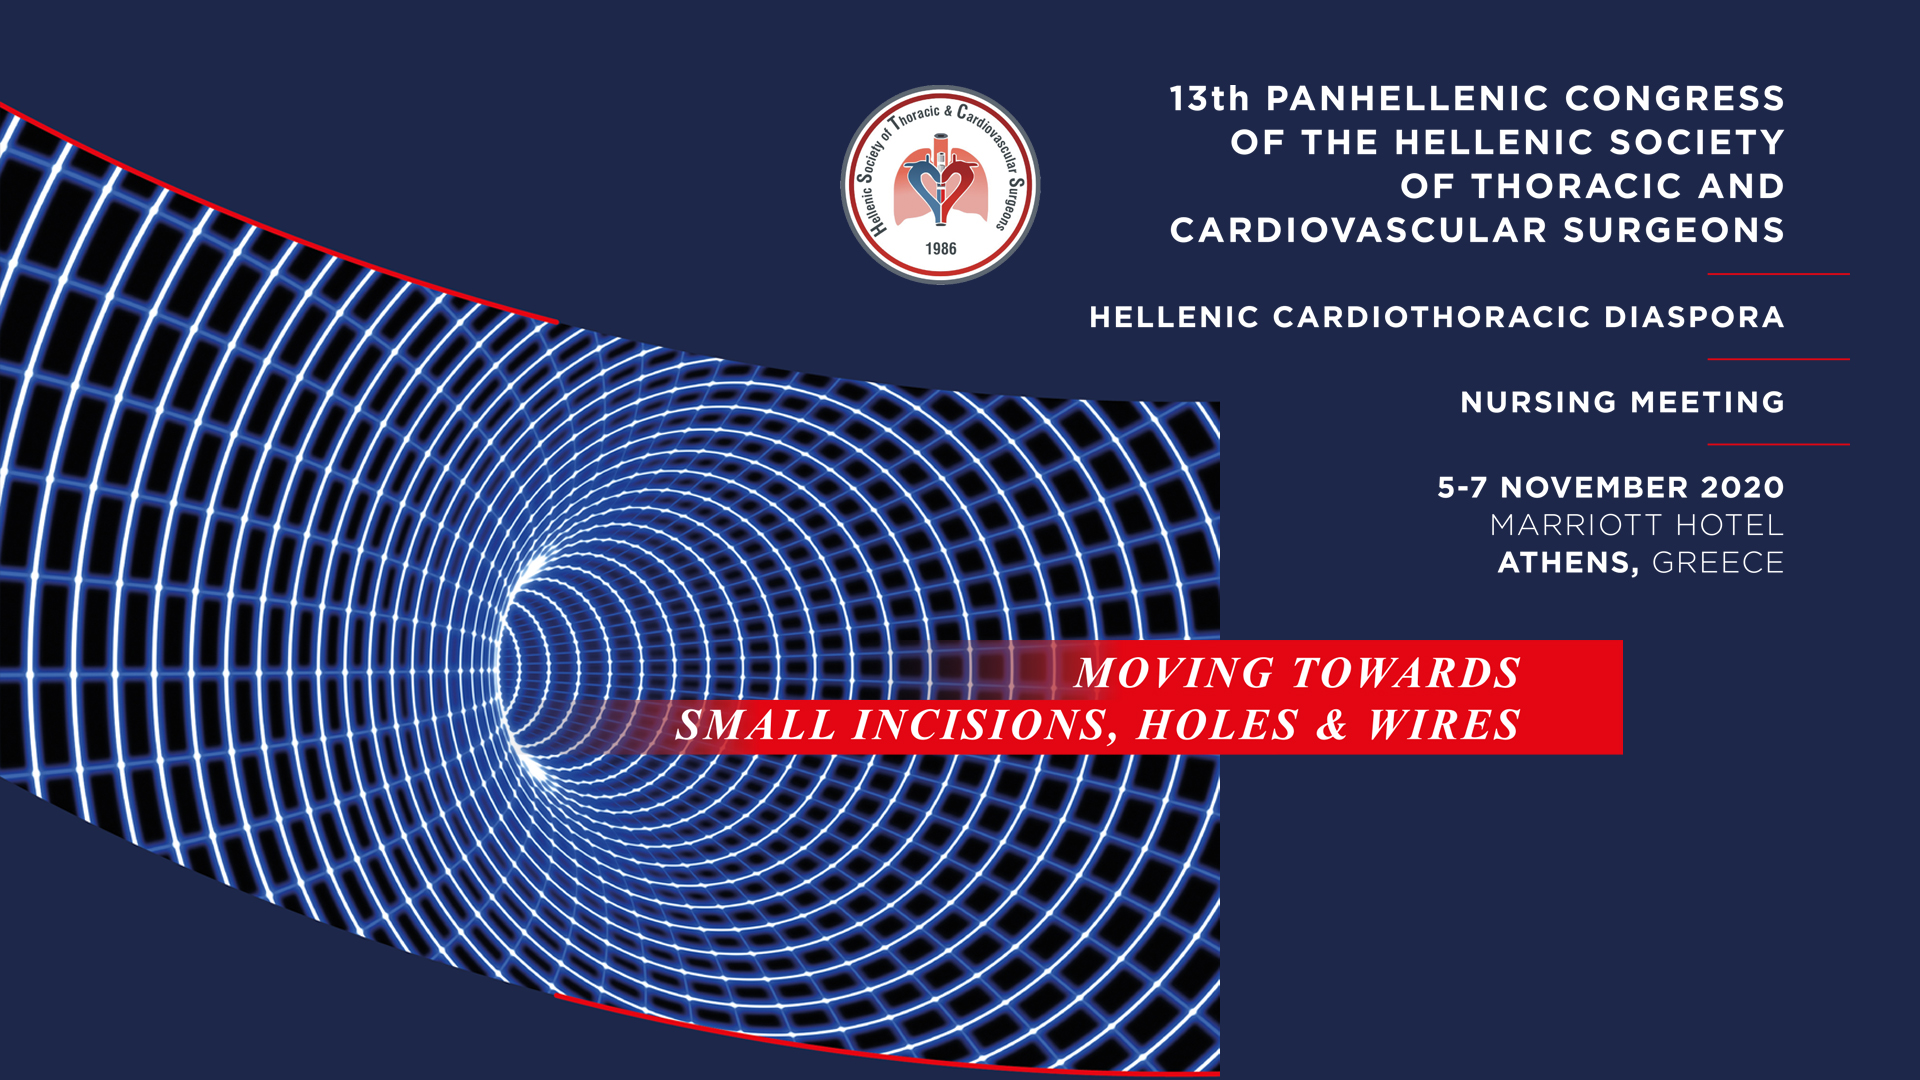 13th Panhellenic Congress of the Hellenic Society of Thoracic and Cardiovascular Surgeons